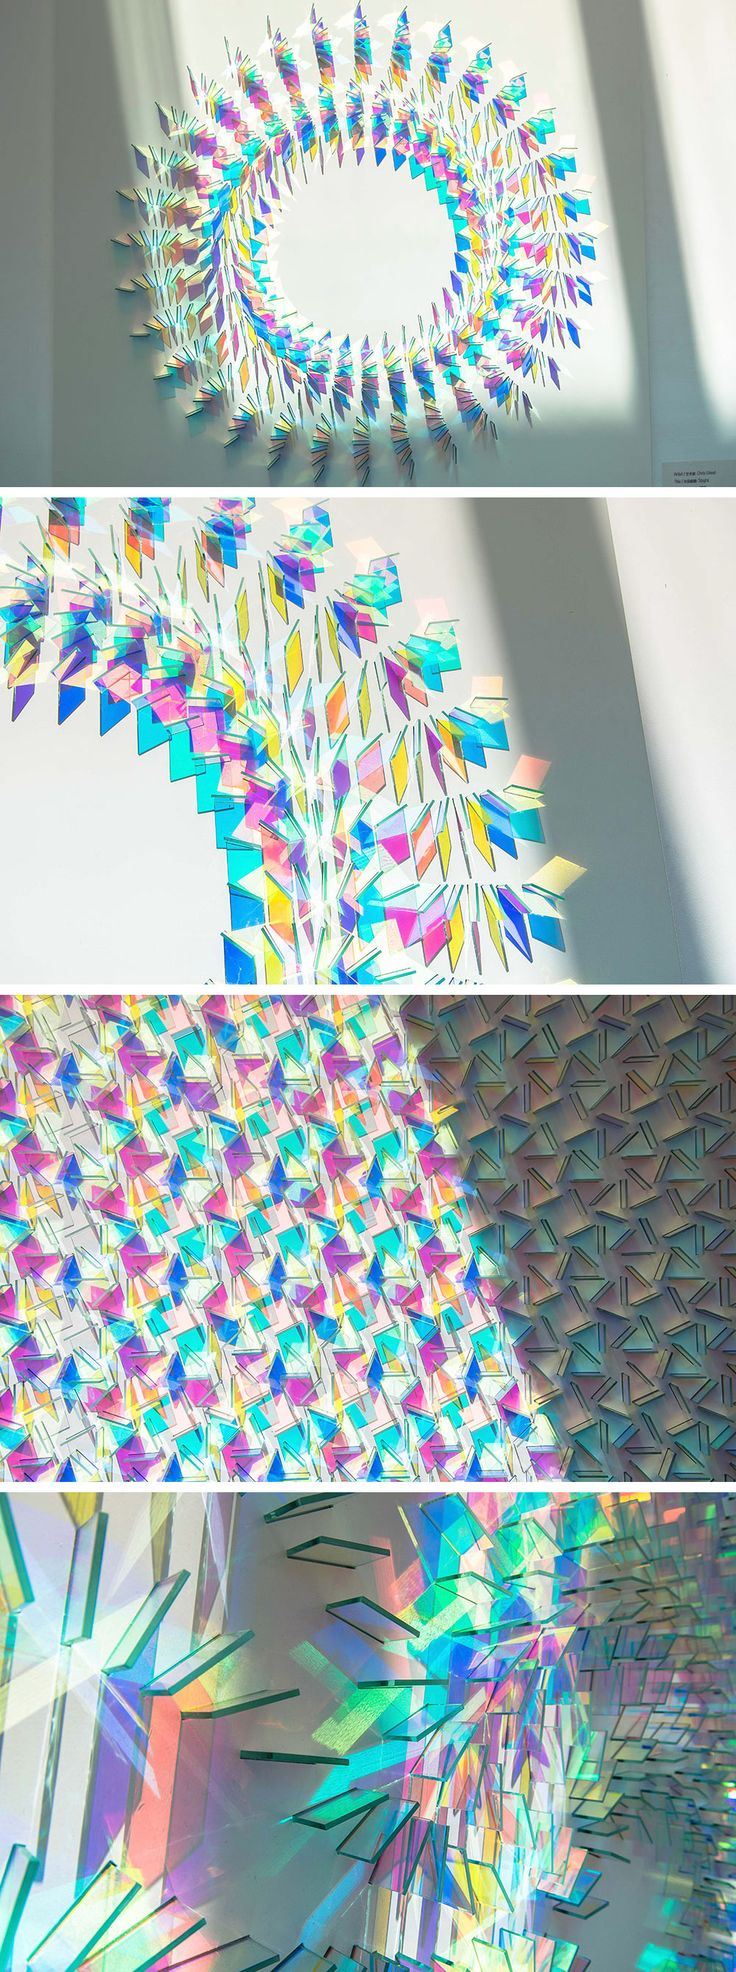 Dichroic Glass Installations by Chris Wood Reflect Light in a Rainbow of Color